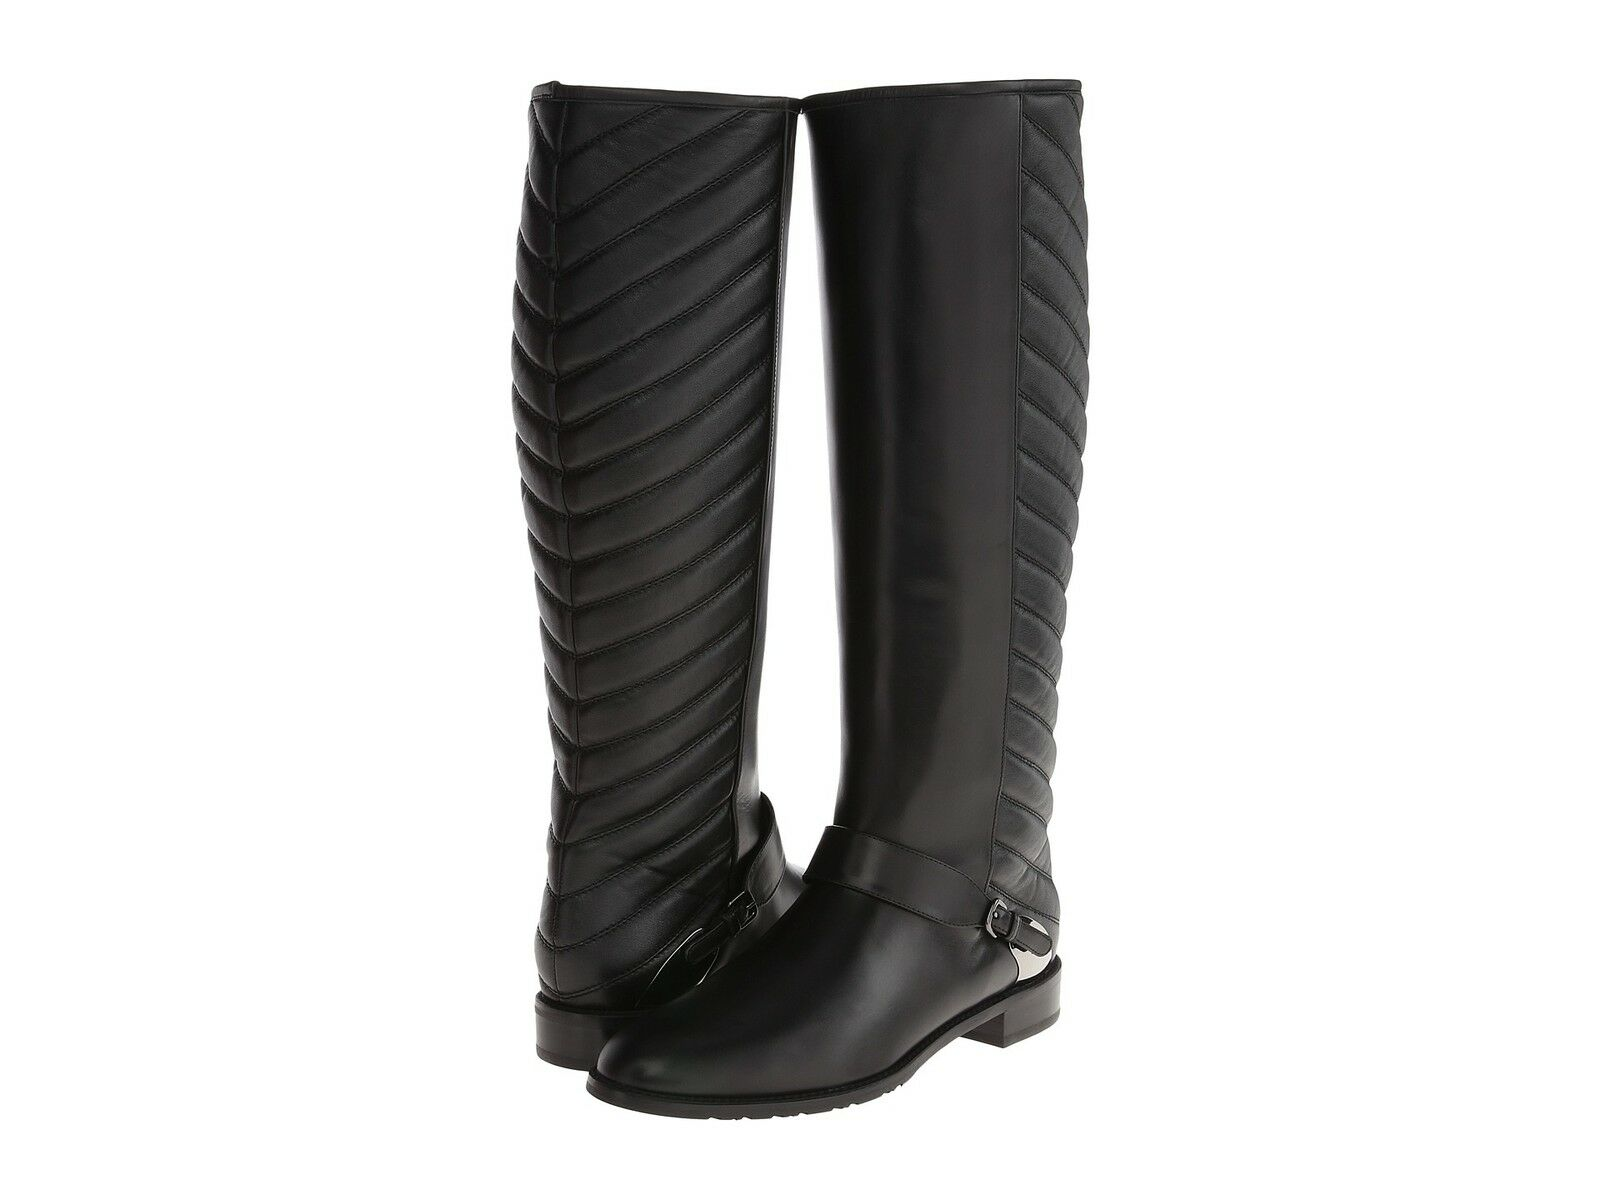 695 Stuart Weitzman Raceway Tall Knee Black Quilted Riding Flat Boots 6 Bootie